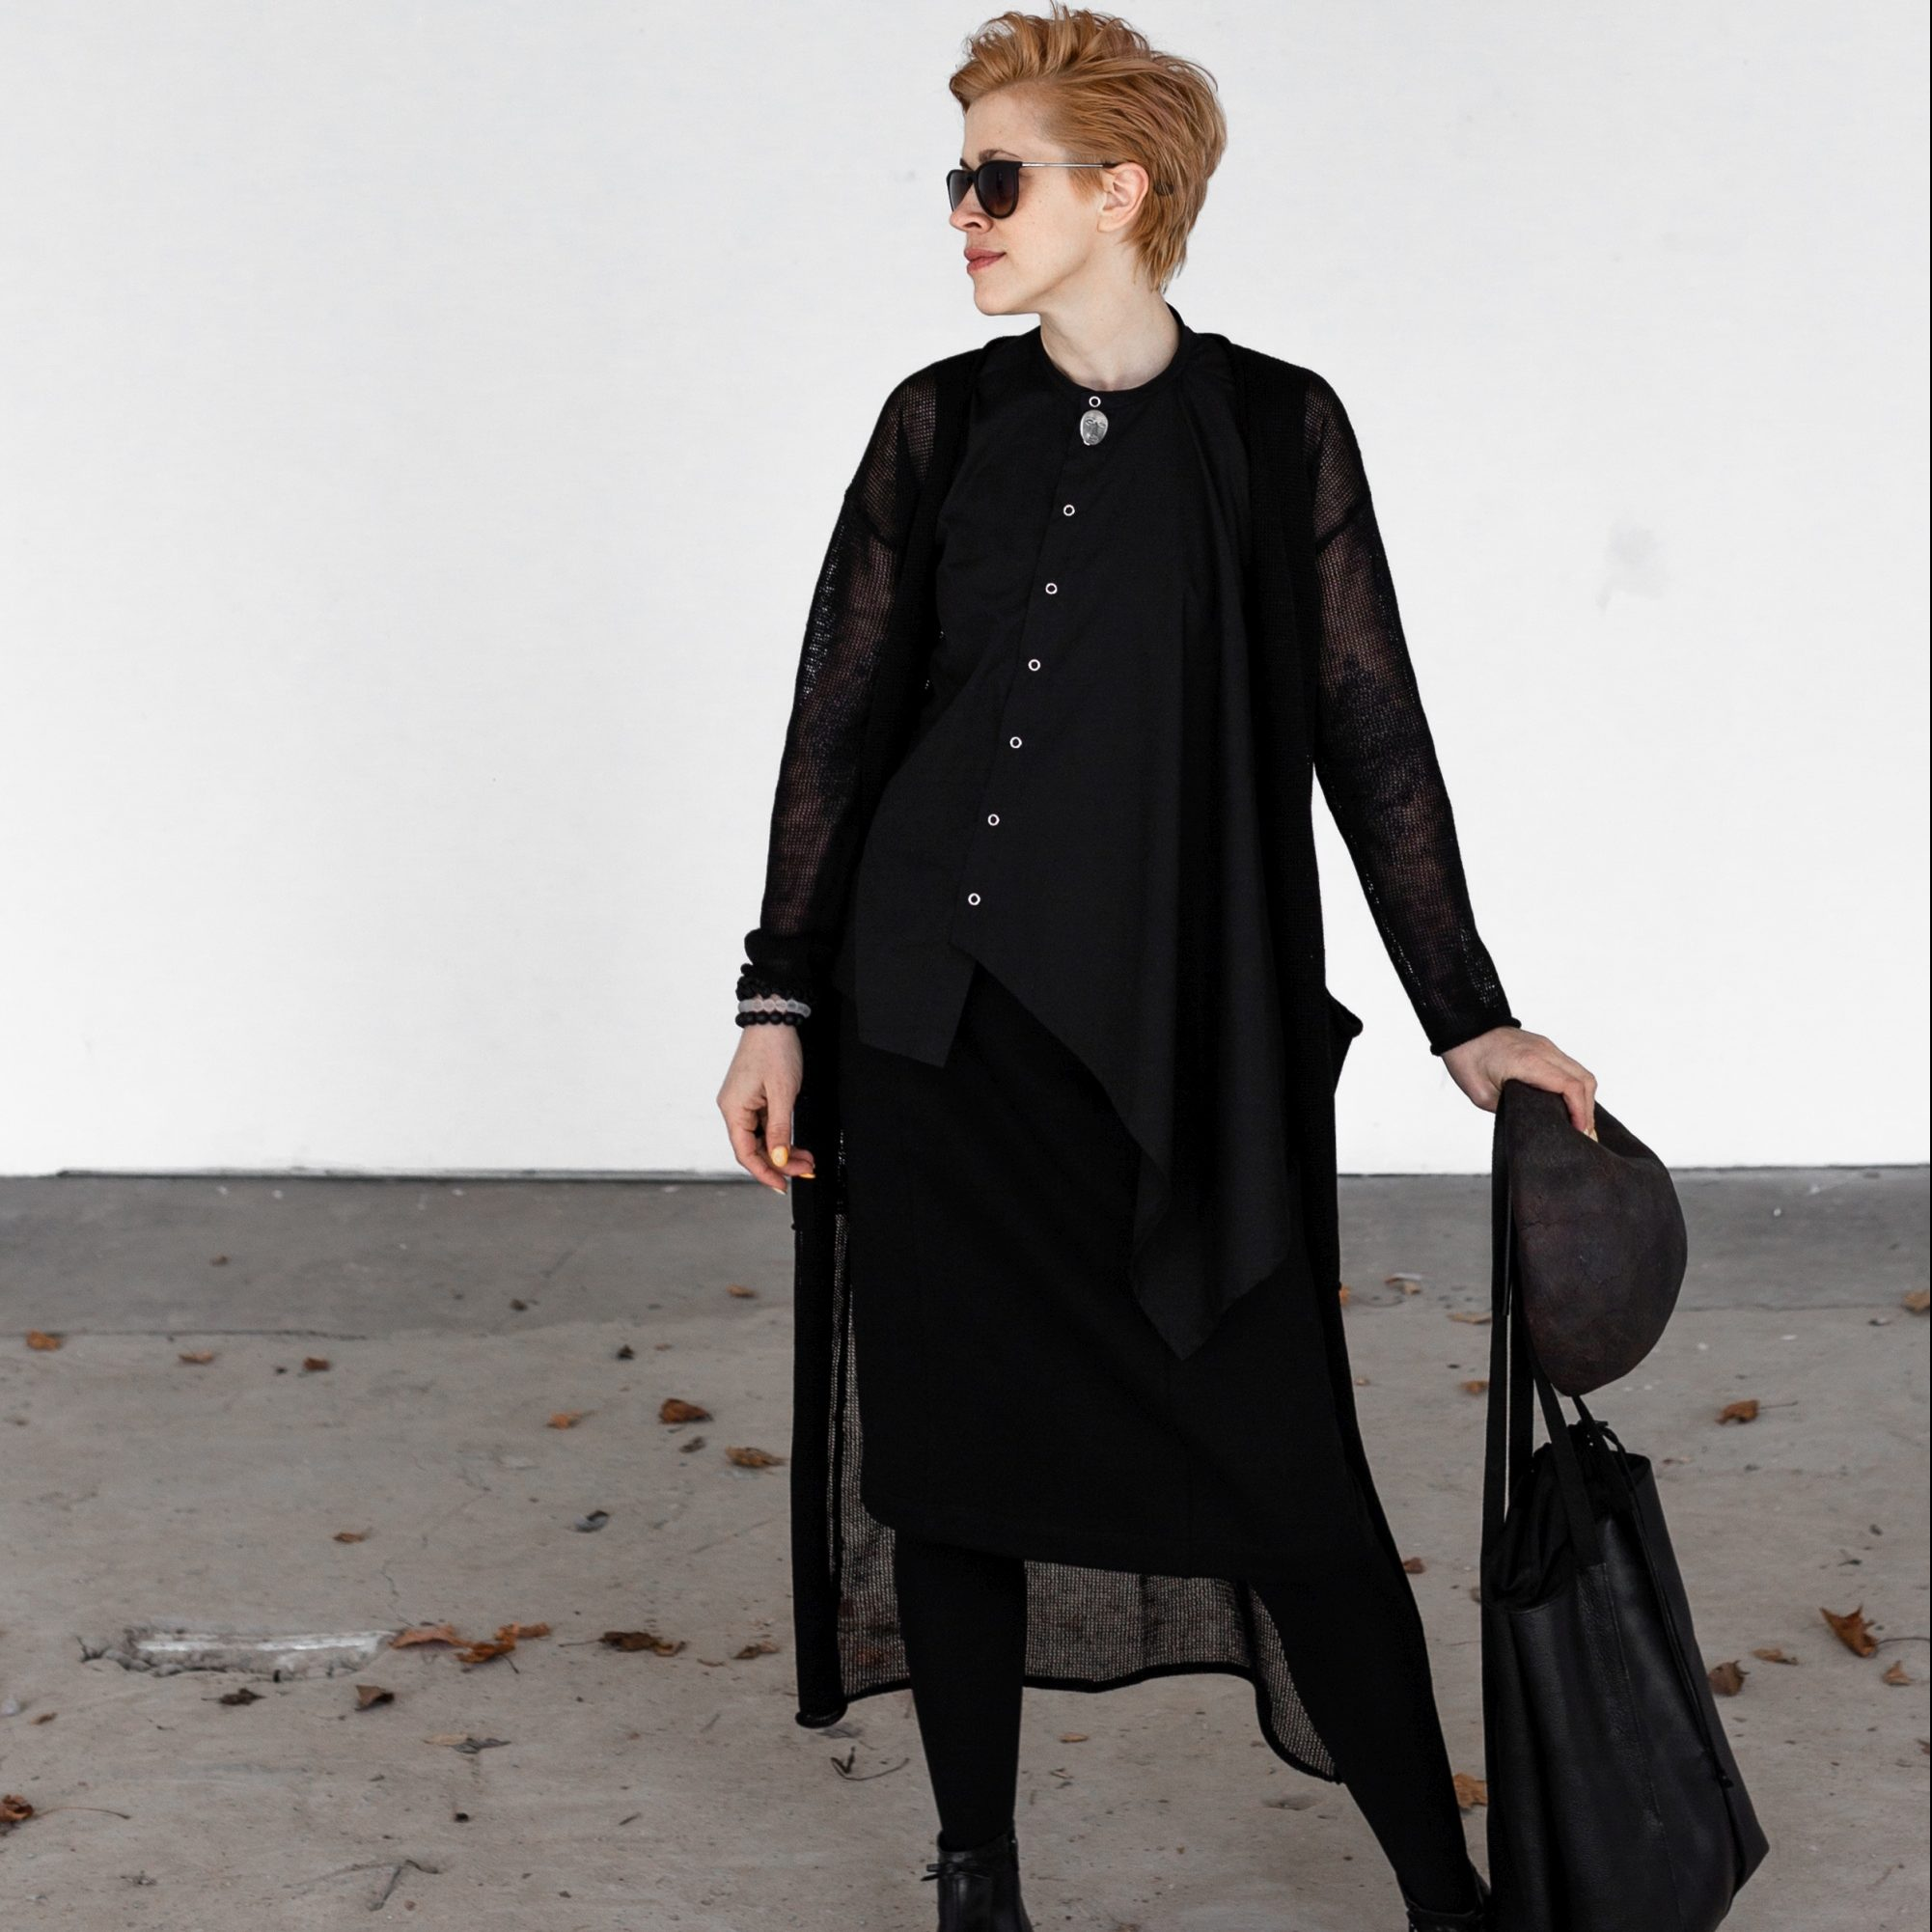 Black linen jacket by June9concept